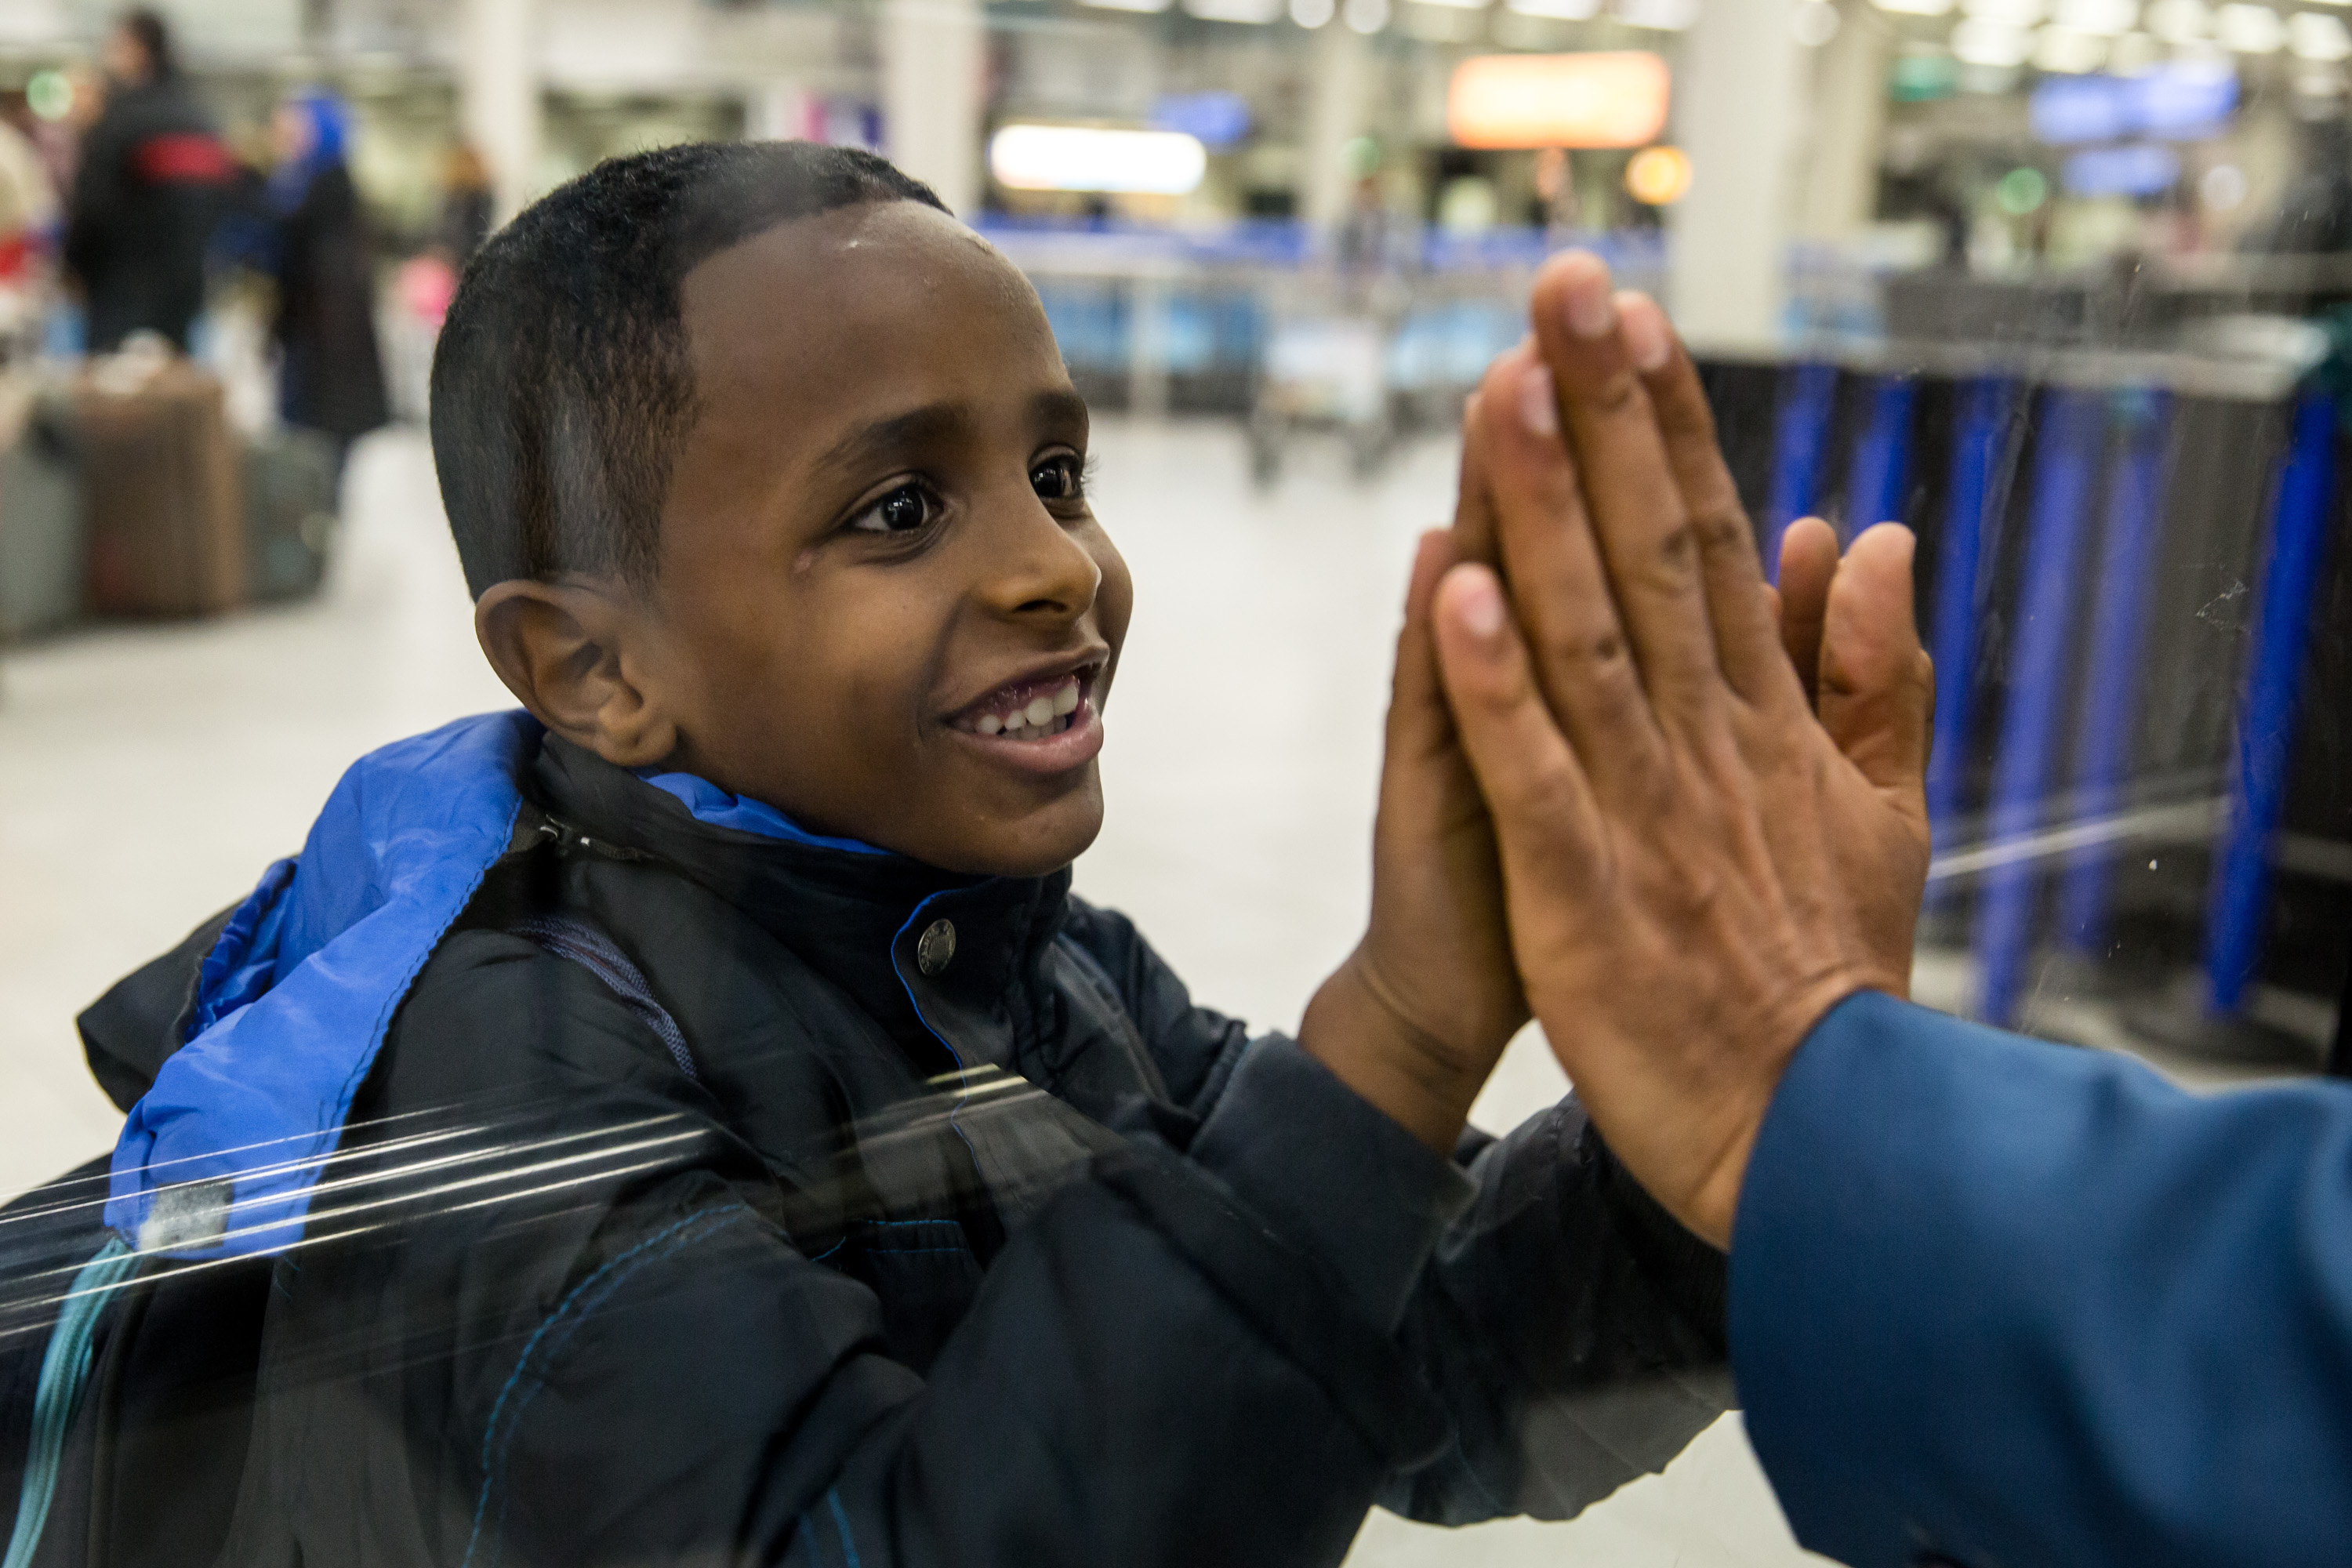 Mebrahtom (34) from Eritrea is reunited with his wife Ezwti (27), their son Israel (7) and daughter Betlehem (4) after more than two and a half years apart.